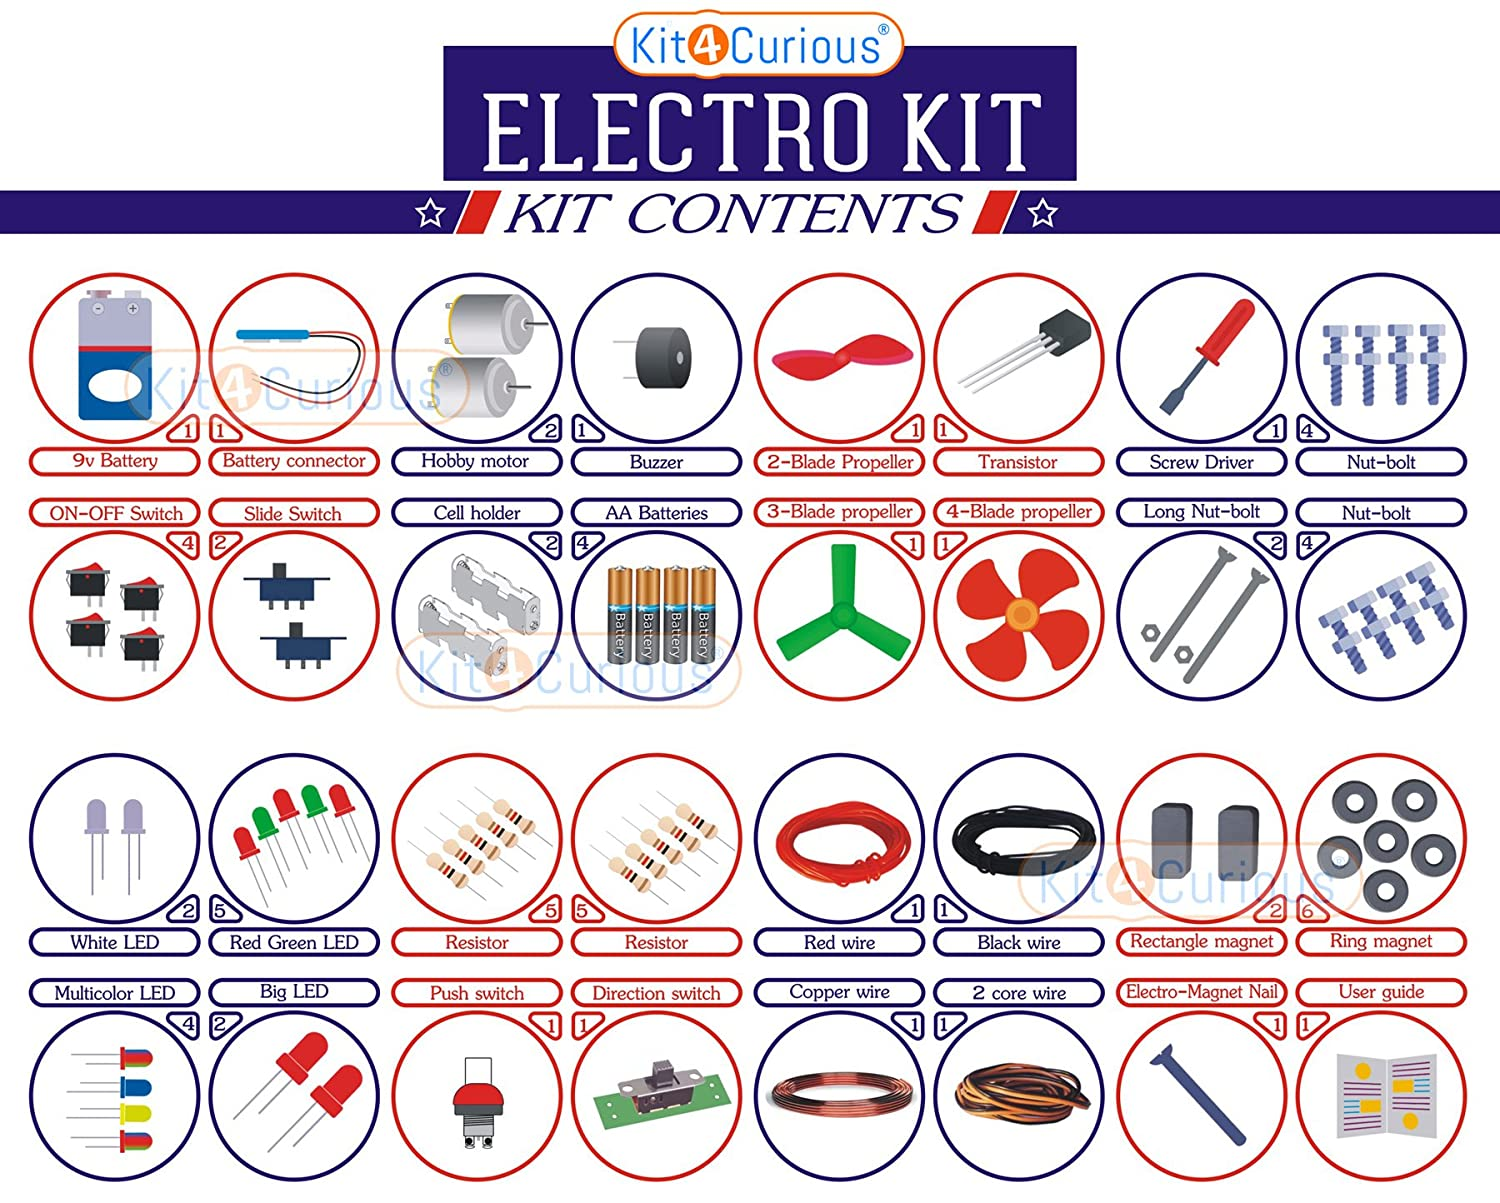 Kit4curious Electro Kit Electronic Diy Components With Guide Amazon 9v Battery Eliminator Circuits Kits Doityourself Industrial Scientific